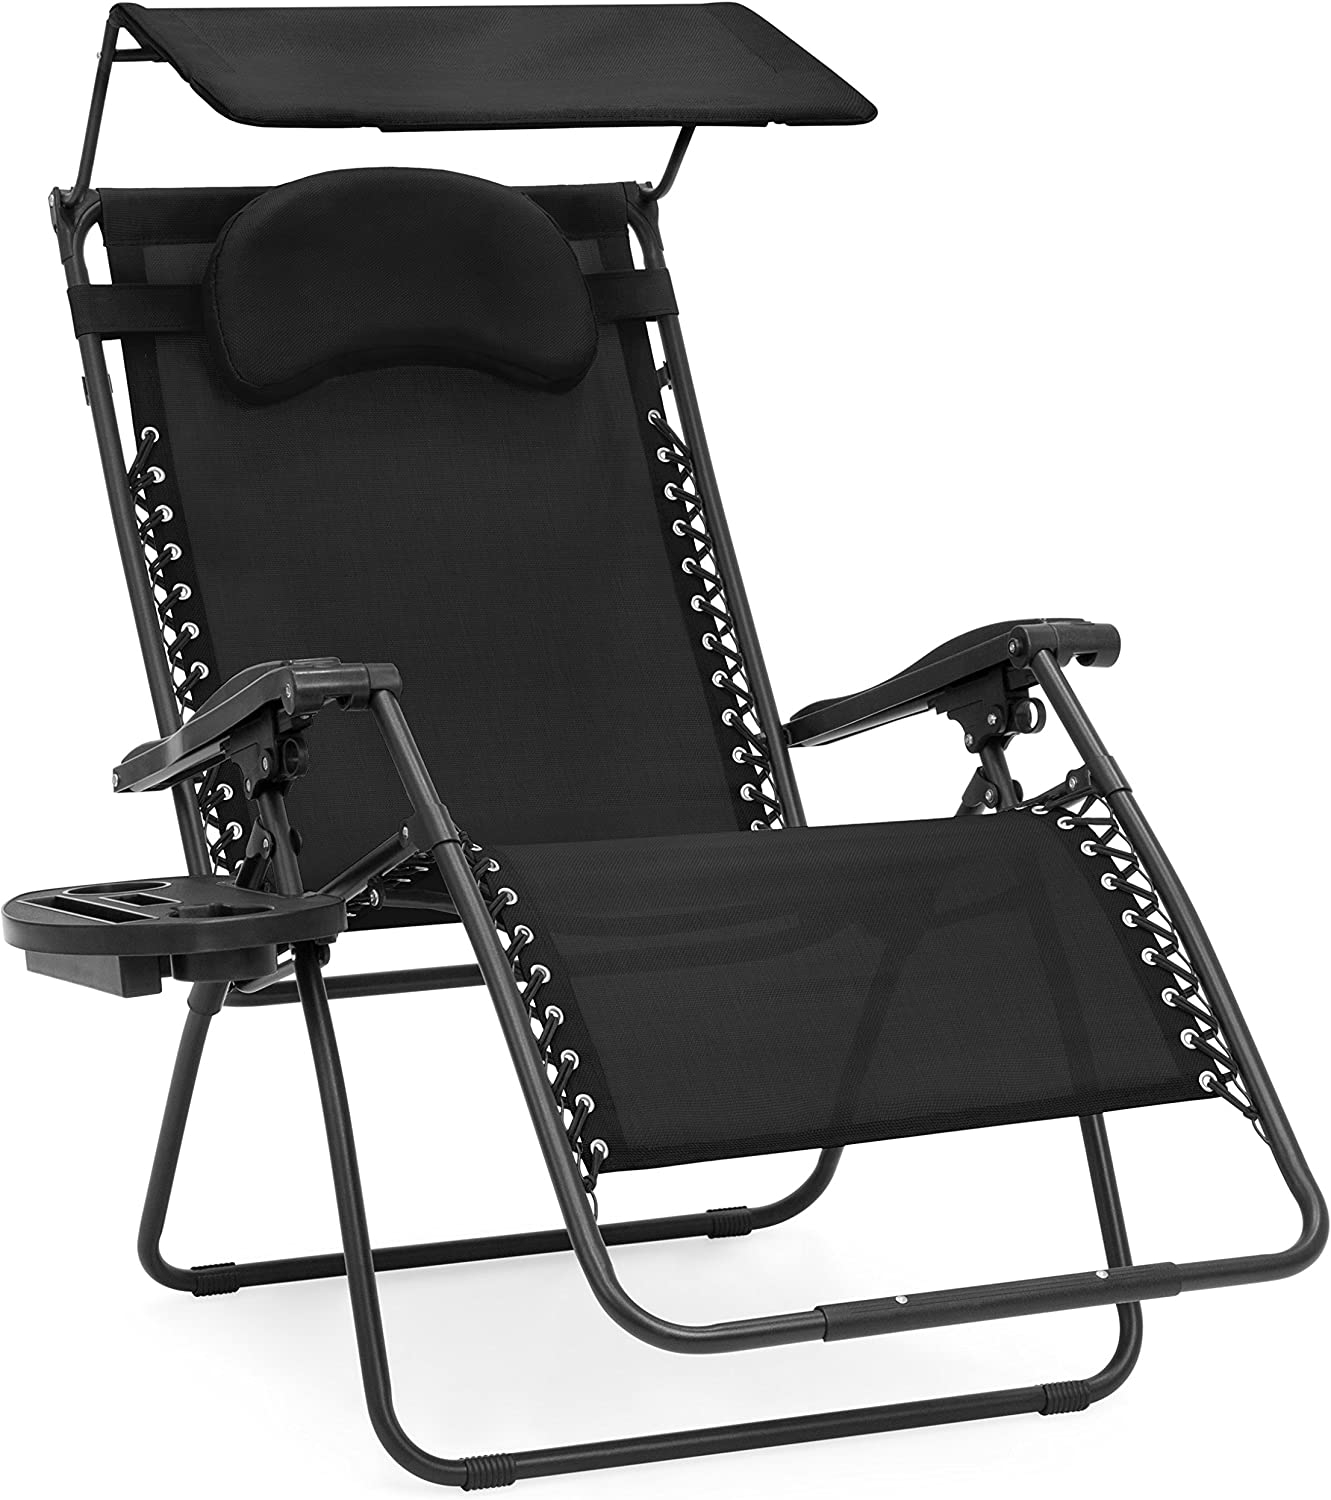 Best Choice Products Oversized Steel Mesh Zero Gravity Reclining Lounge Patio Chair w/Folding Canopy Shade and Cup Holder, Black